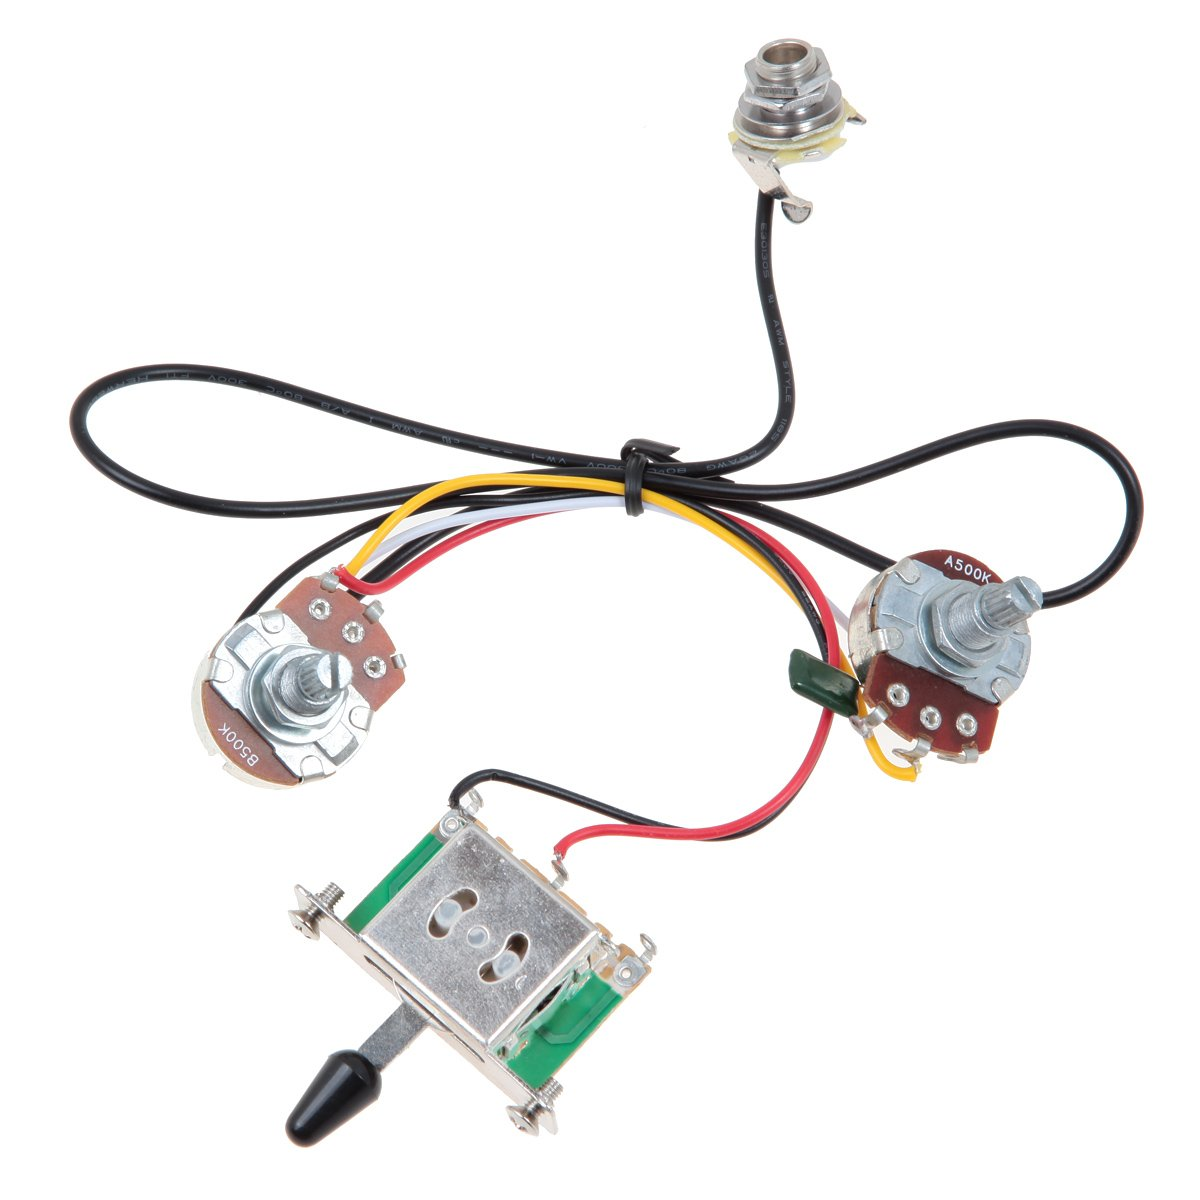 Amazon.com: Kmise MI0322 Two Pickup Guitar Wiring Harness, 3 Way Blade  Switch 500K, Great with Humbuckers: Musical Instruments